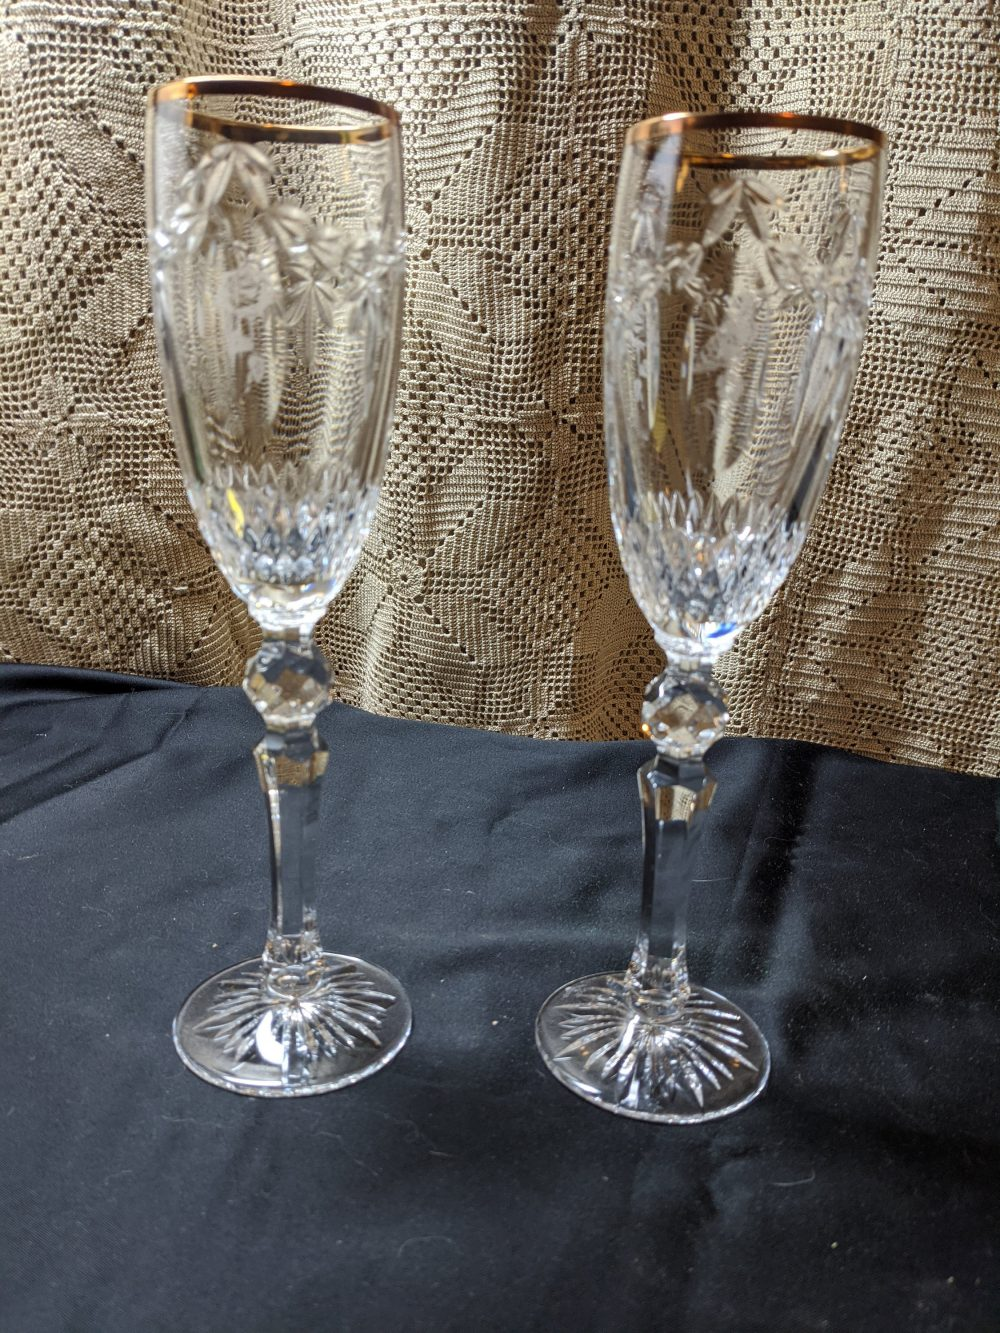 Free Shipping - Pair Of Waterford Crystal Cherished Moments Champagne Toasting Flutes With Gold Band